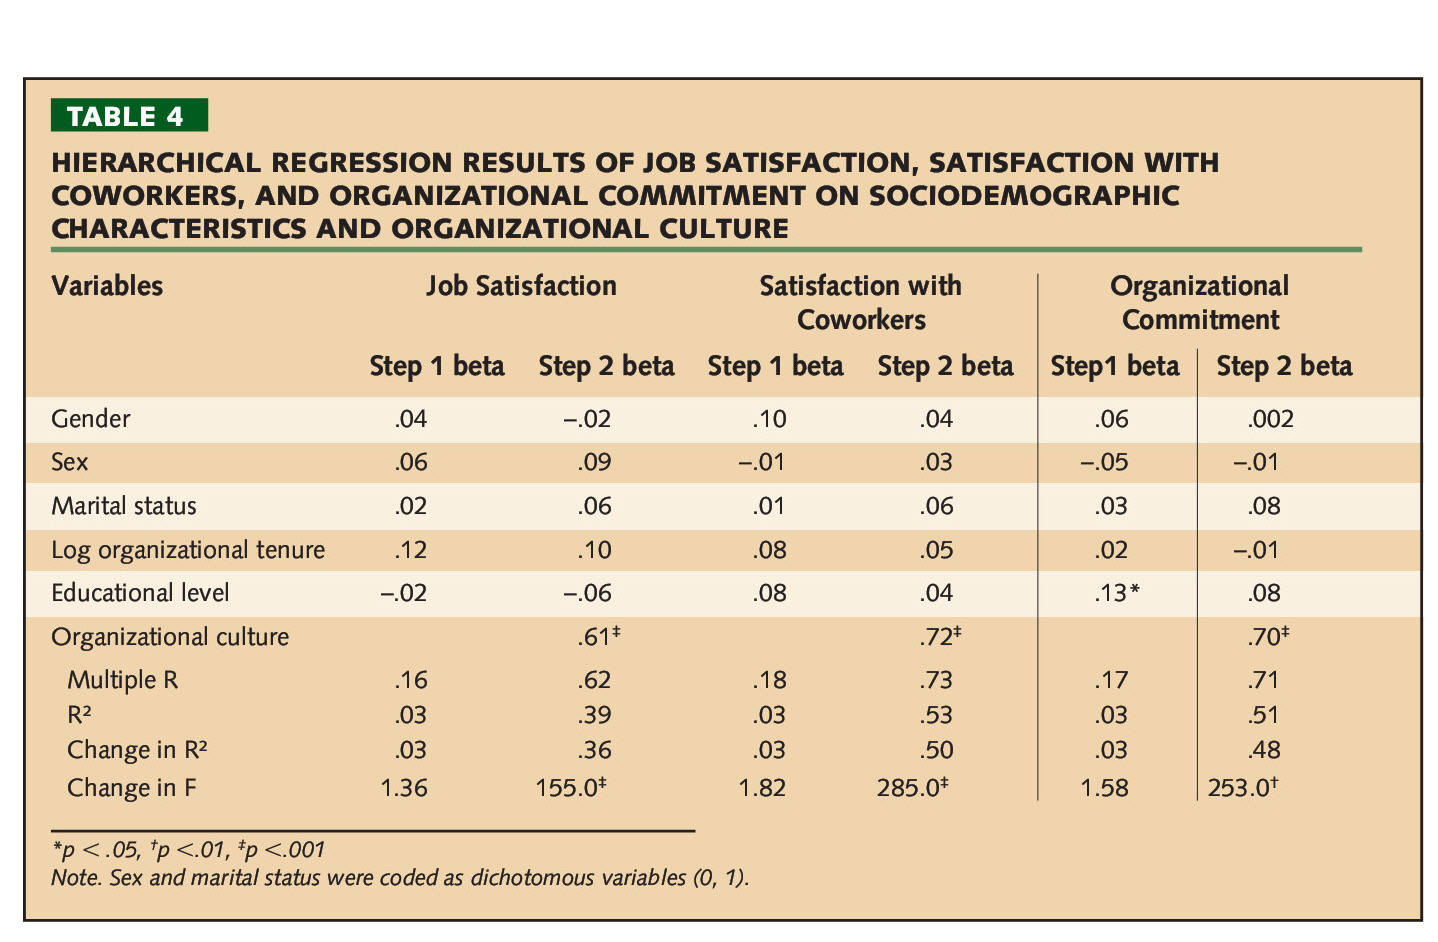 TABLE 4HIERARCHICAL REGRESSION RESULTS OF JOB SATISFACTION, SATISFACTION WITH COWORKERS, AND ORGANIZATIONAL COMMITMENT ON SOCIODEMOGRAPHIC CHARACTERISTICS AND ORGANIZATIONAL CULTURE